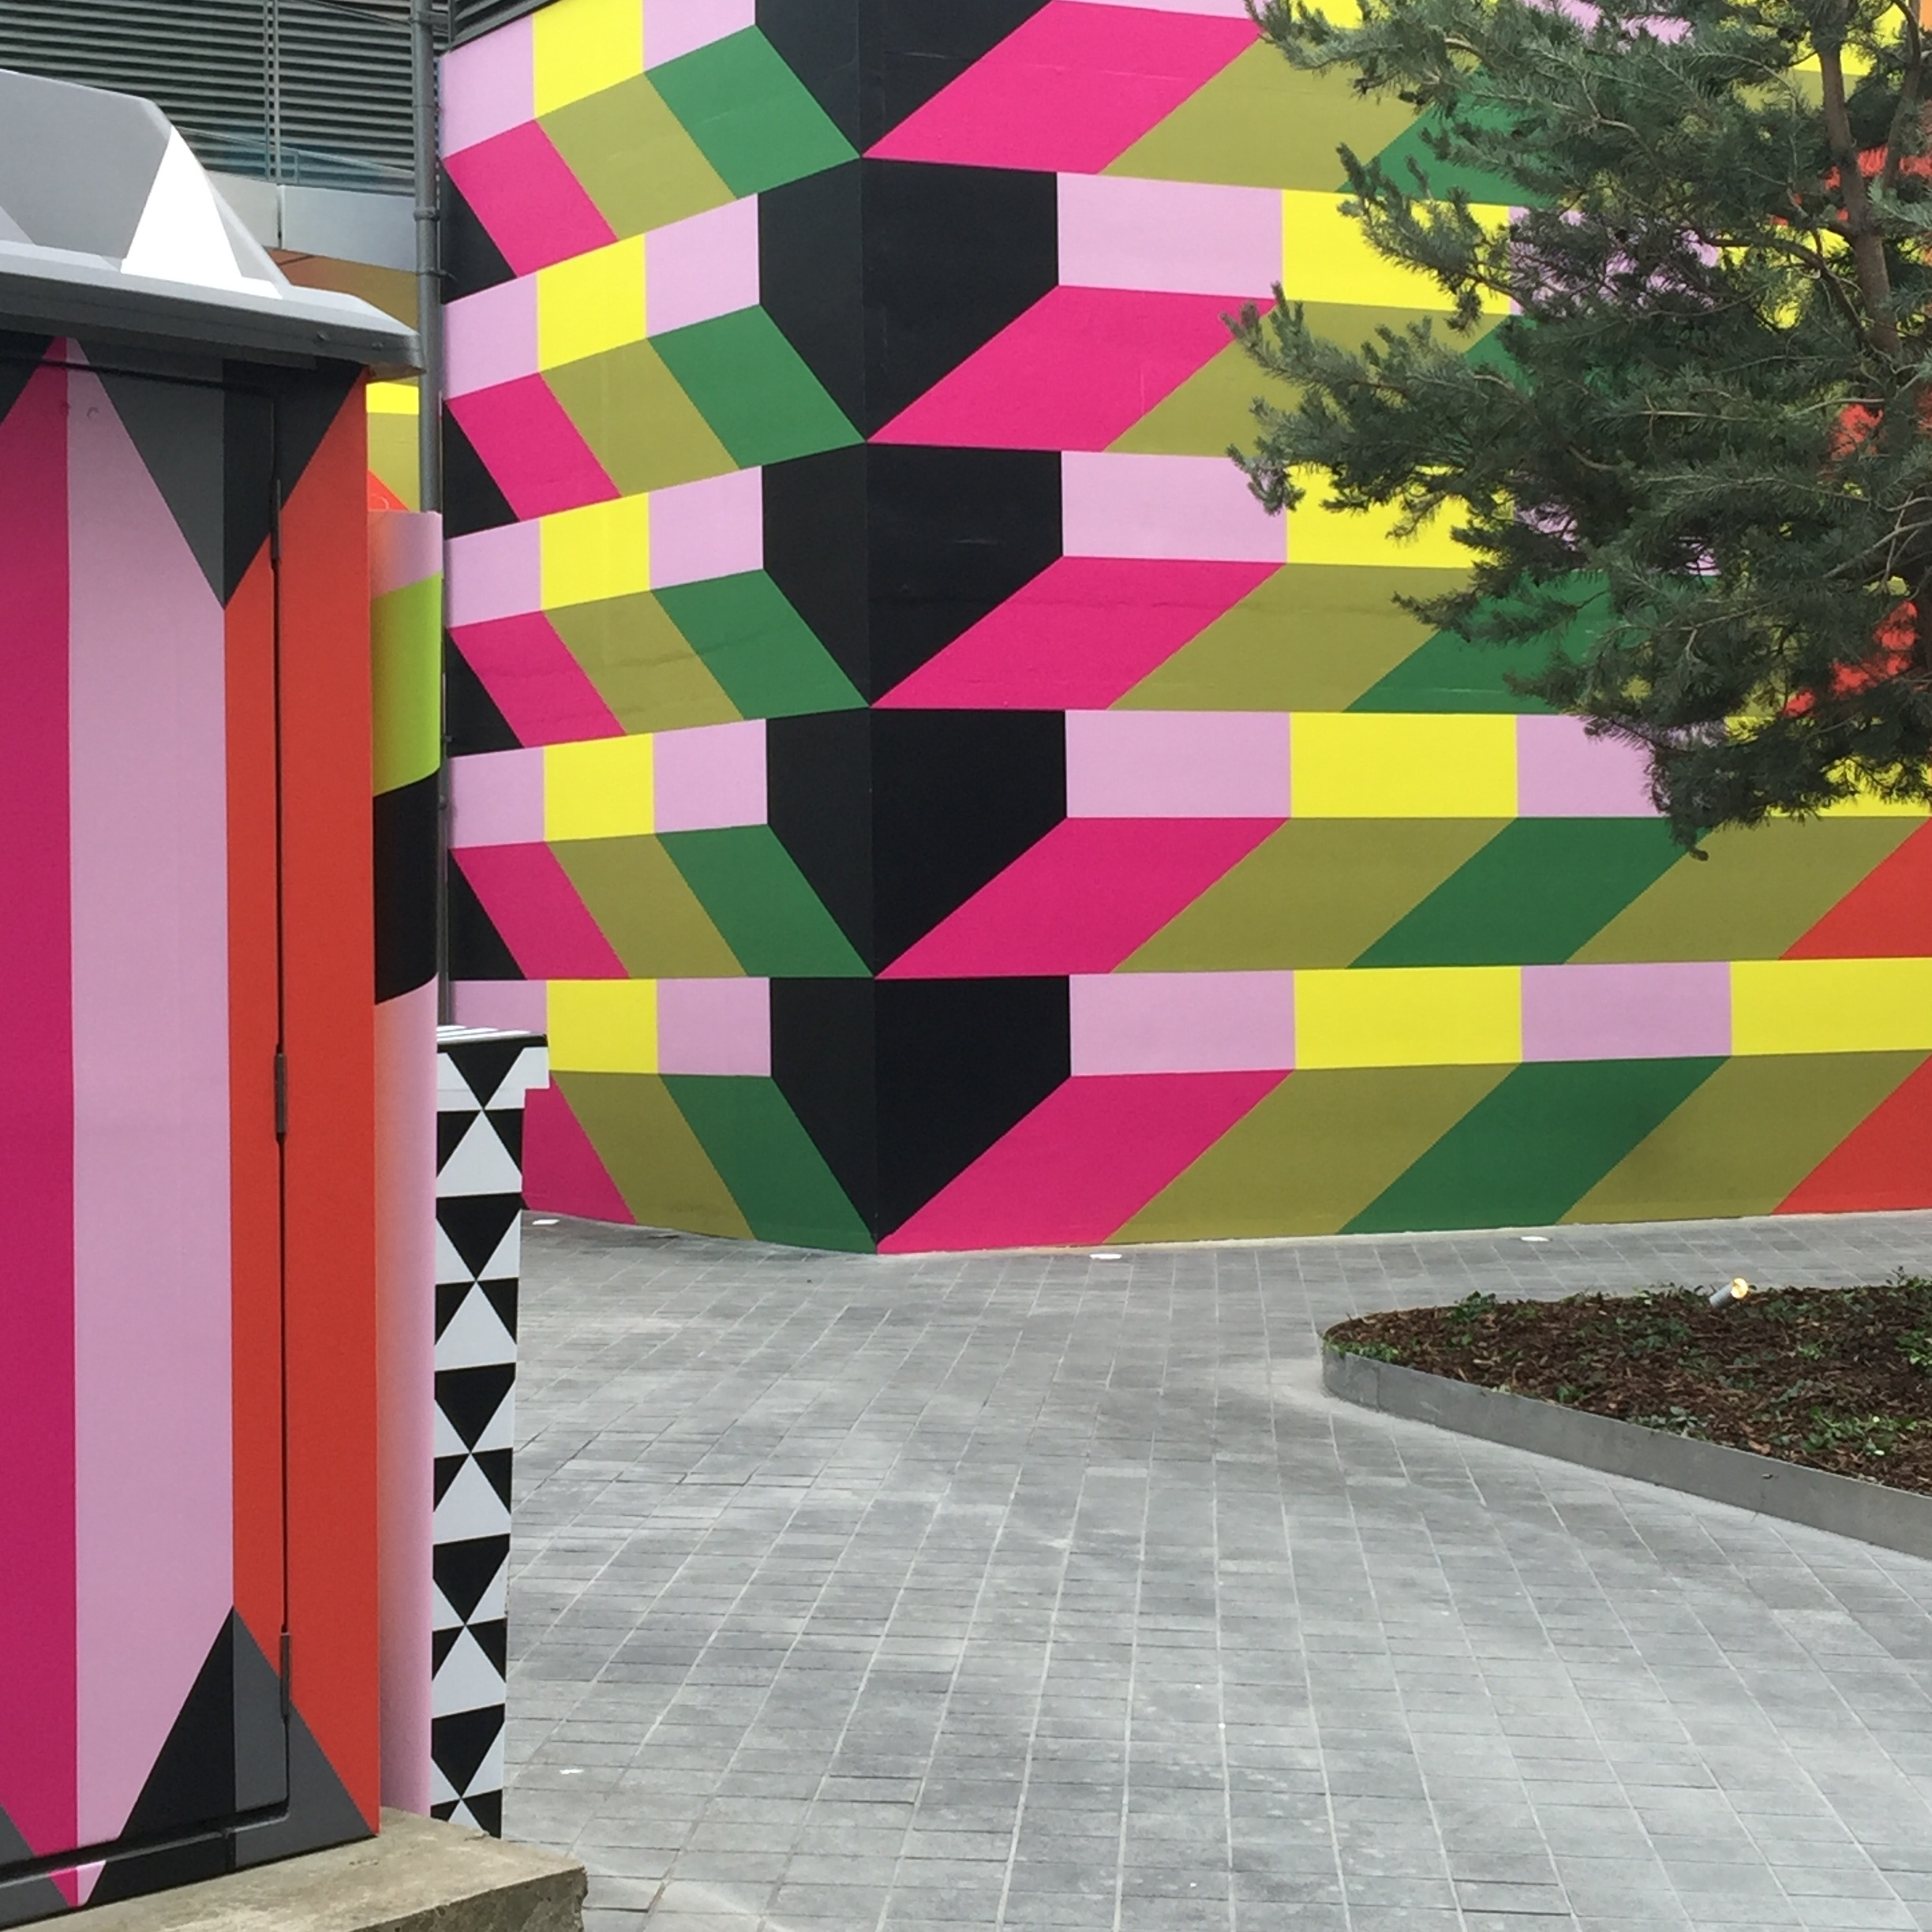 Moira Myerscough installation